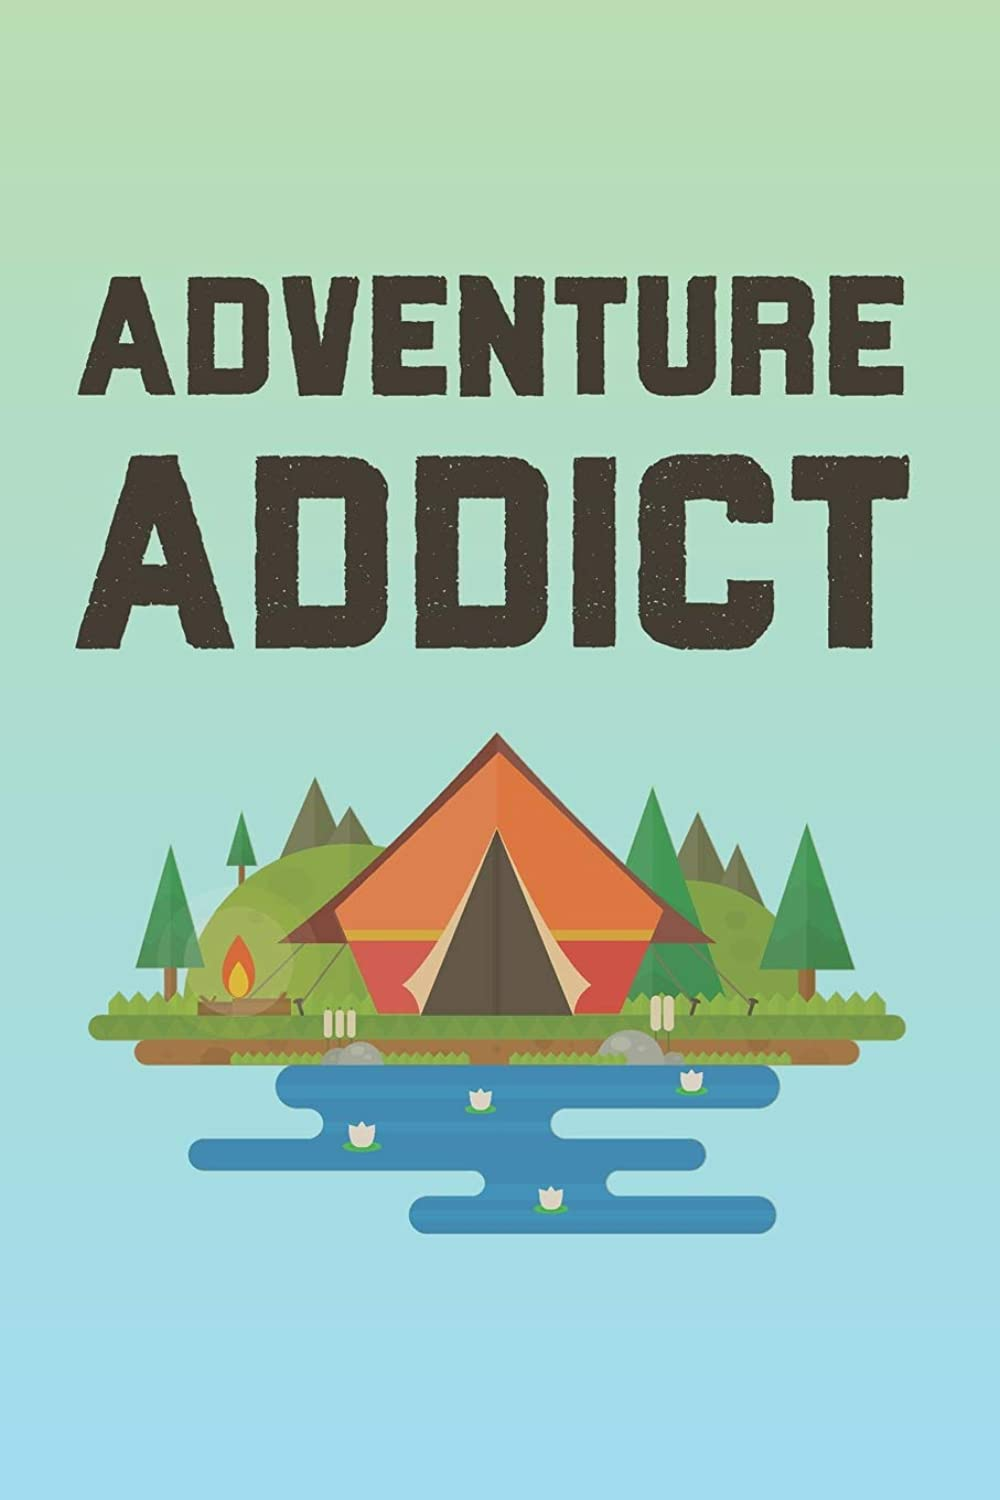 Adventure Addict: 2019 Planner for Campers, Hikers, and Adventure Seekers